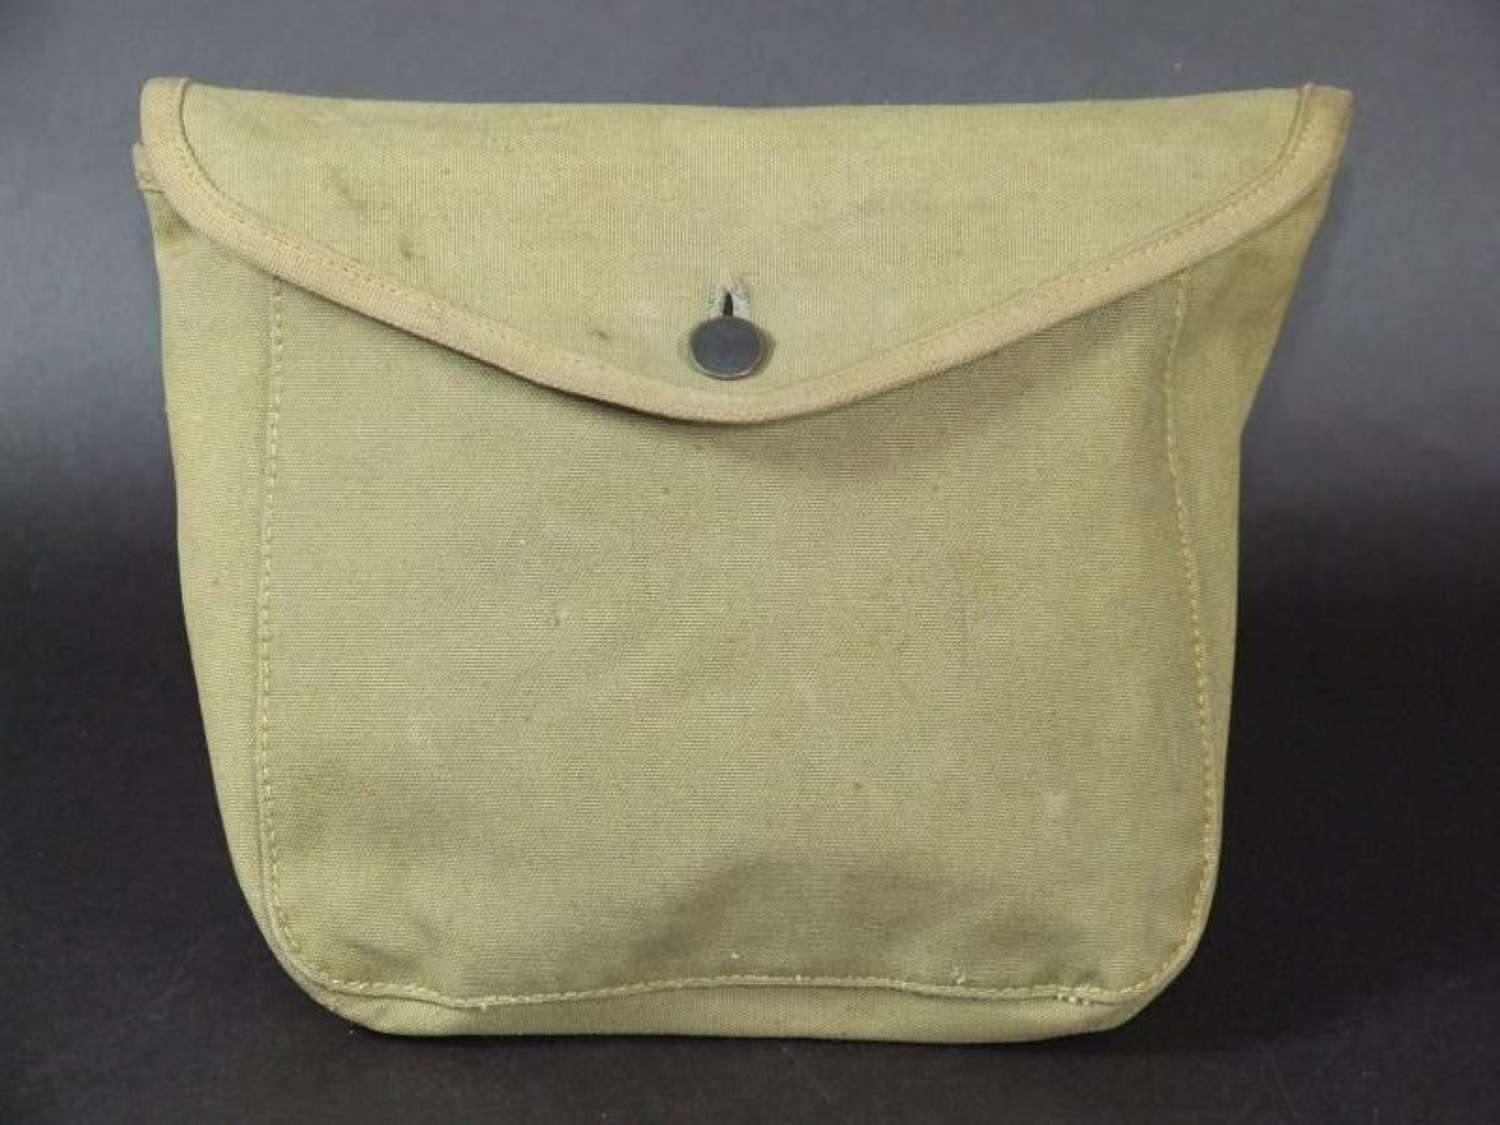 """WWI US Army Haversack """"Meat Can Pouch"""" 1917 Dated"""